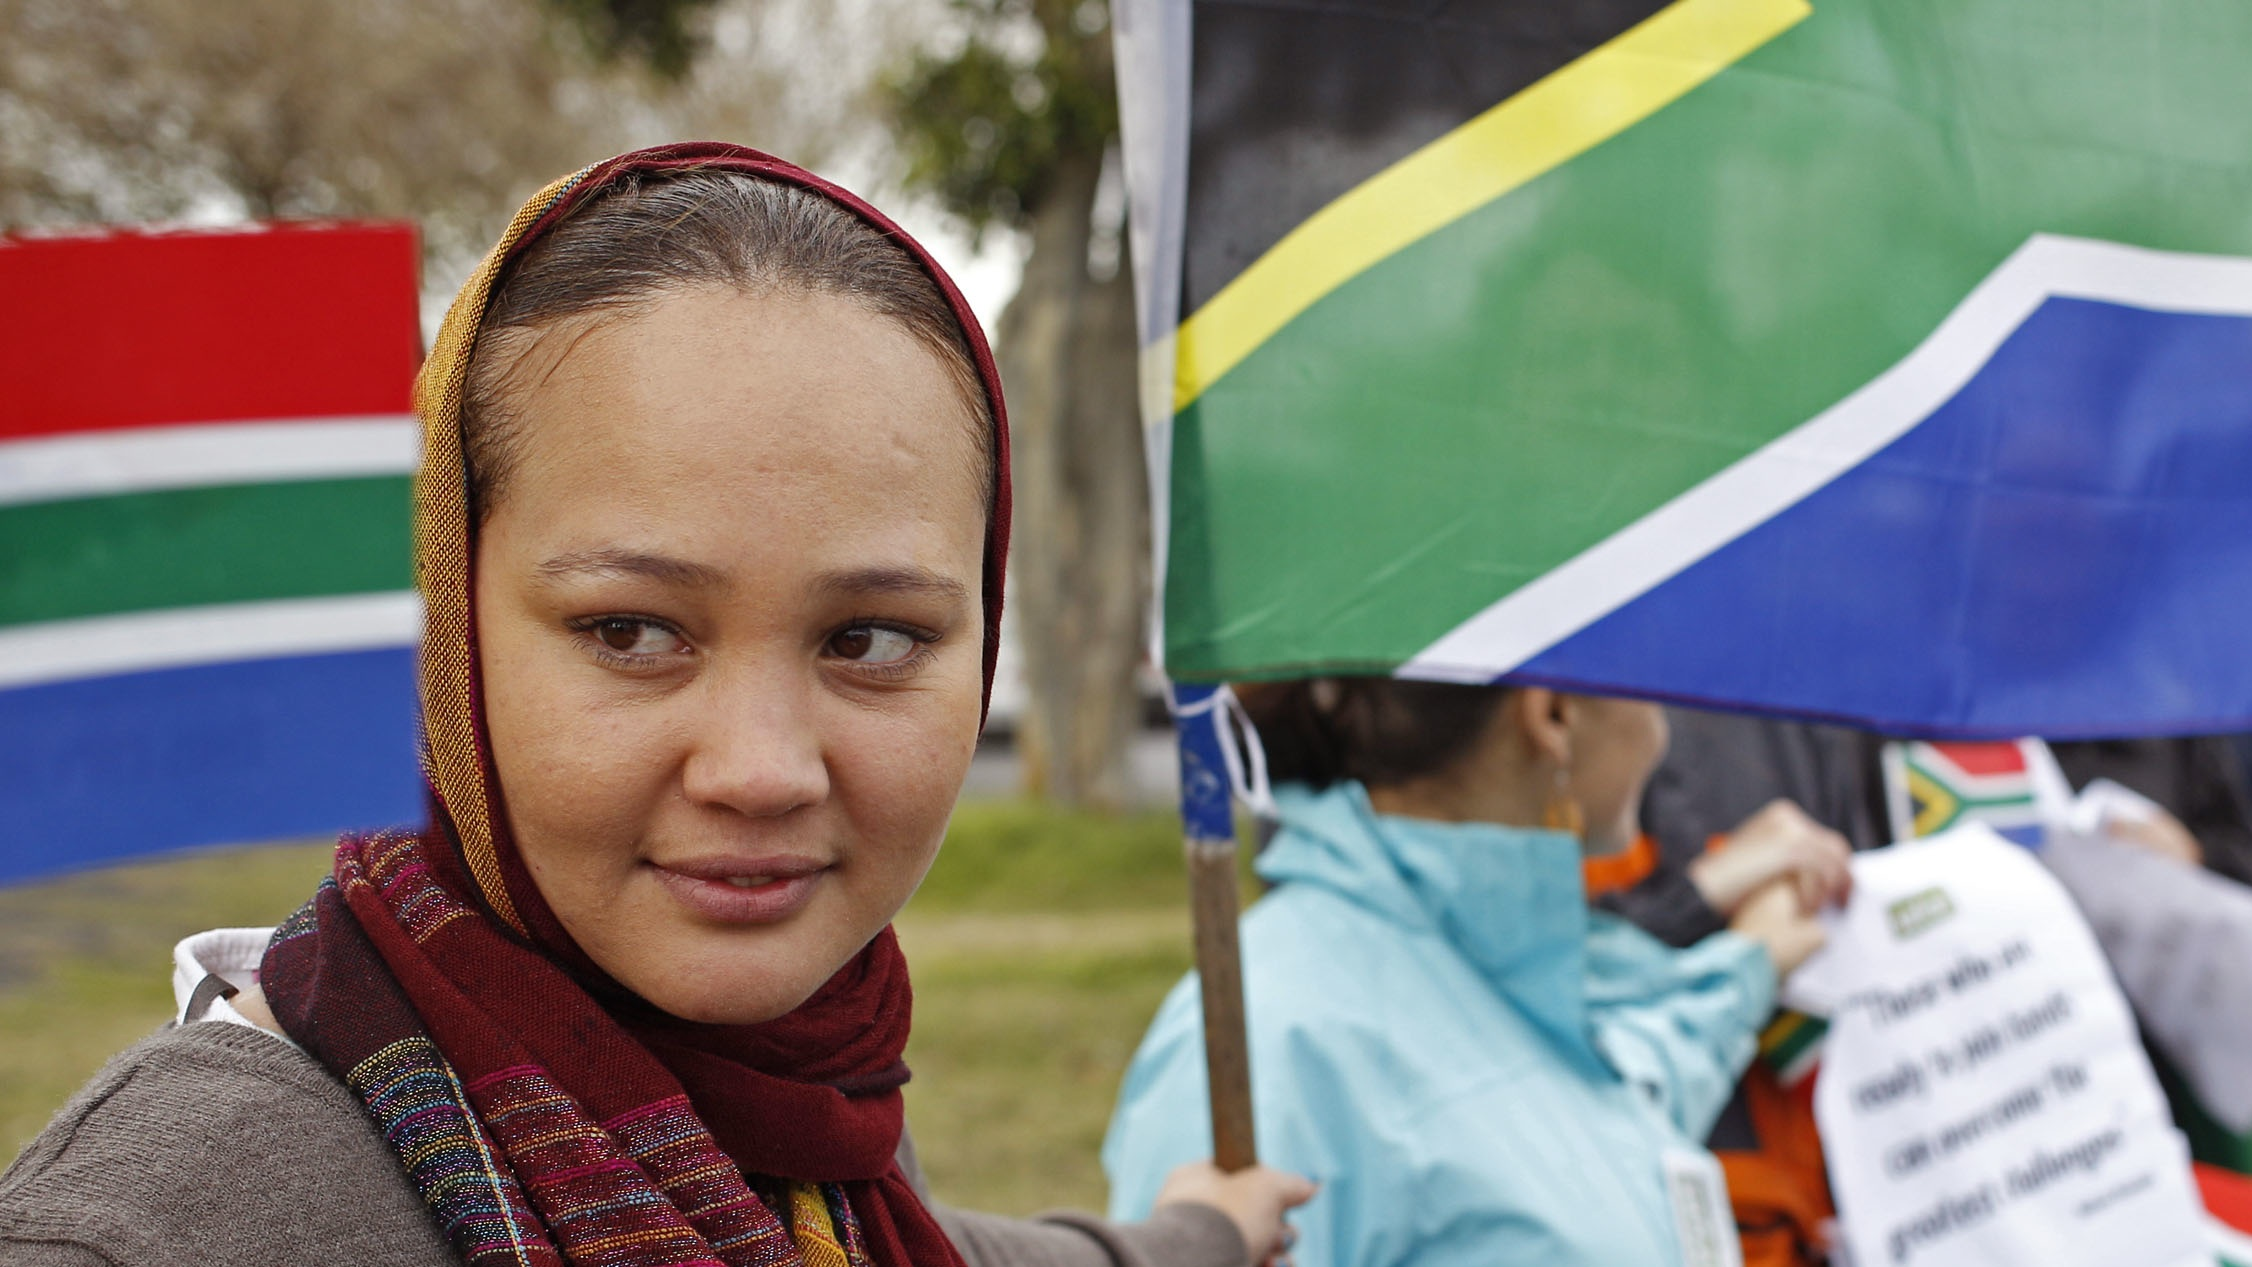 The South African flag, next to a woman, as she and others celebrate former South African President, Nelson Mandela's 95th birthday by forming a human chain in Cape Town, South Africa, Thursday, July 18, 2013. South Africa celebrated his birthday on Thursday, a milestone capped by news that the former president's health was improving after fears that he was close to death during ongoing hospital treatment. (AP Photo/Schalk van Zuydam)